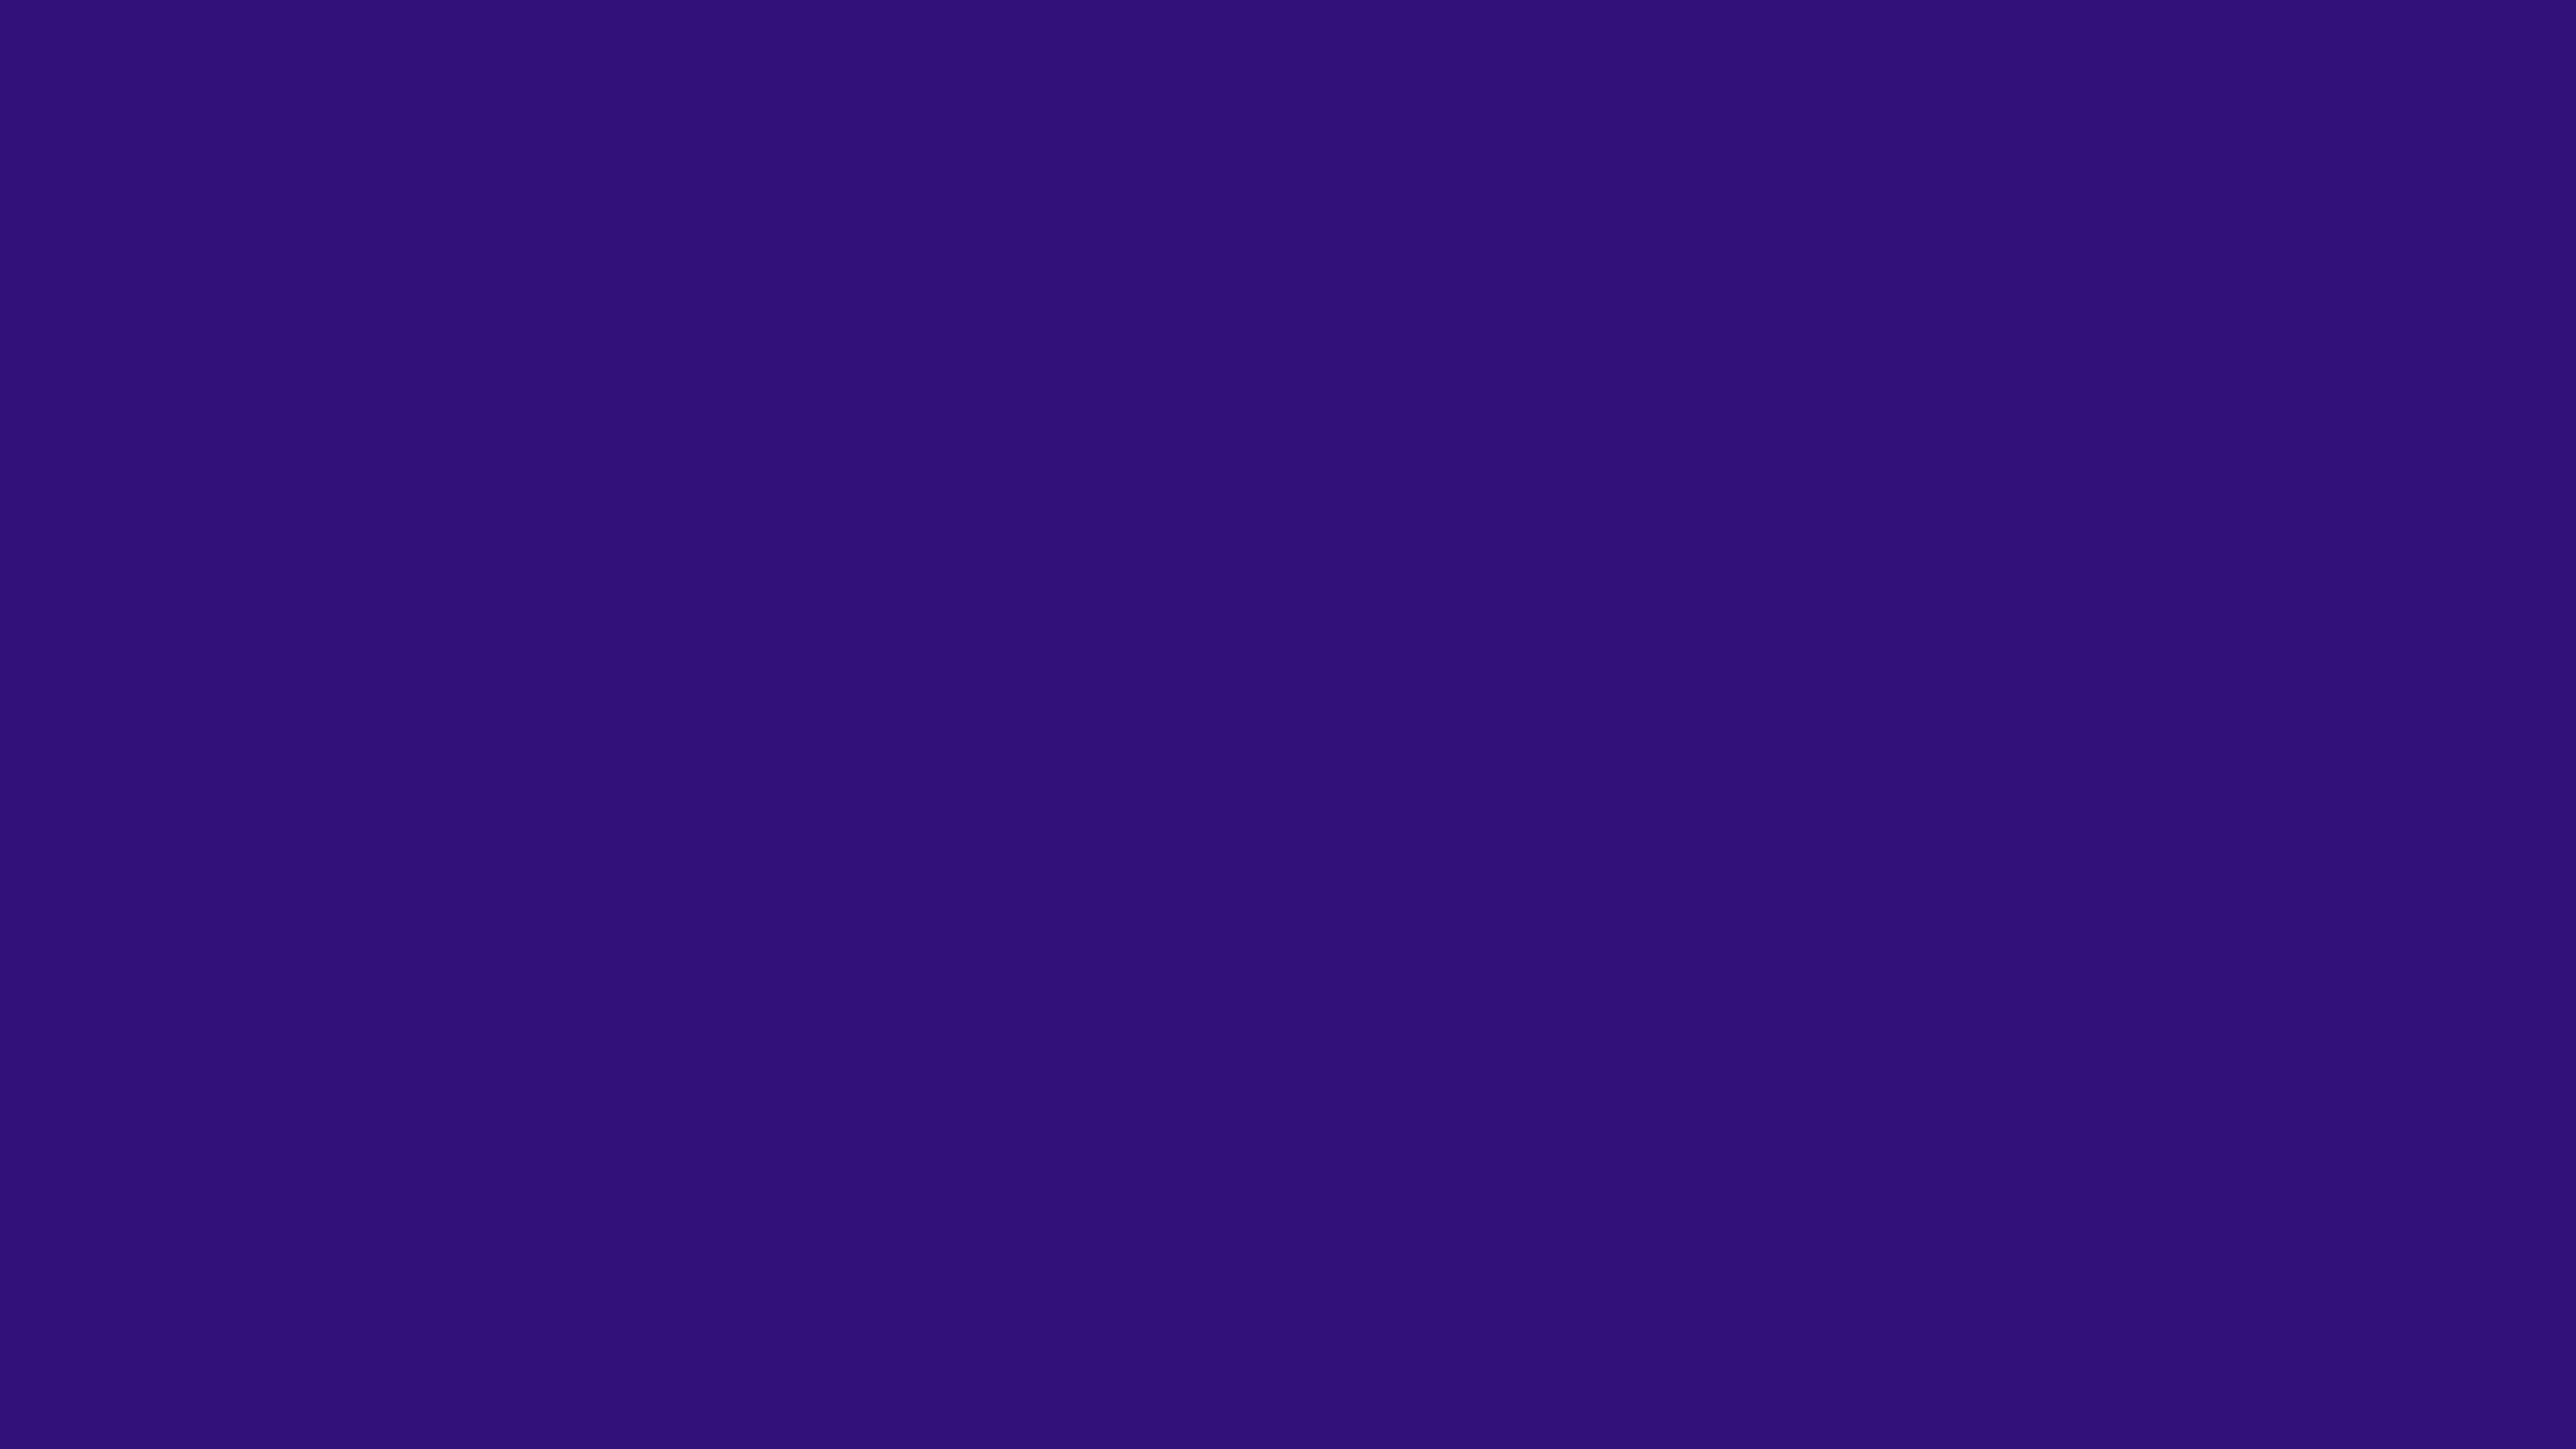 3840x2160 Persian Indigo Solid Color Background